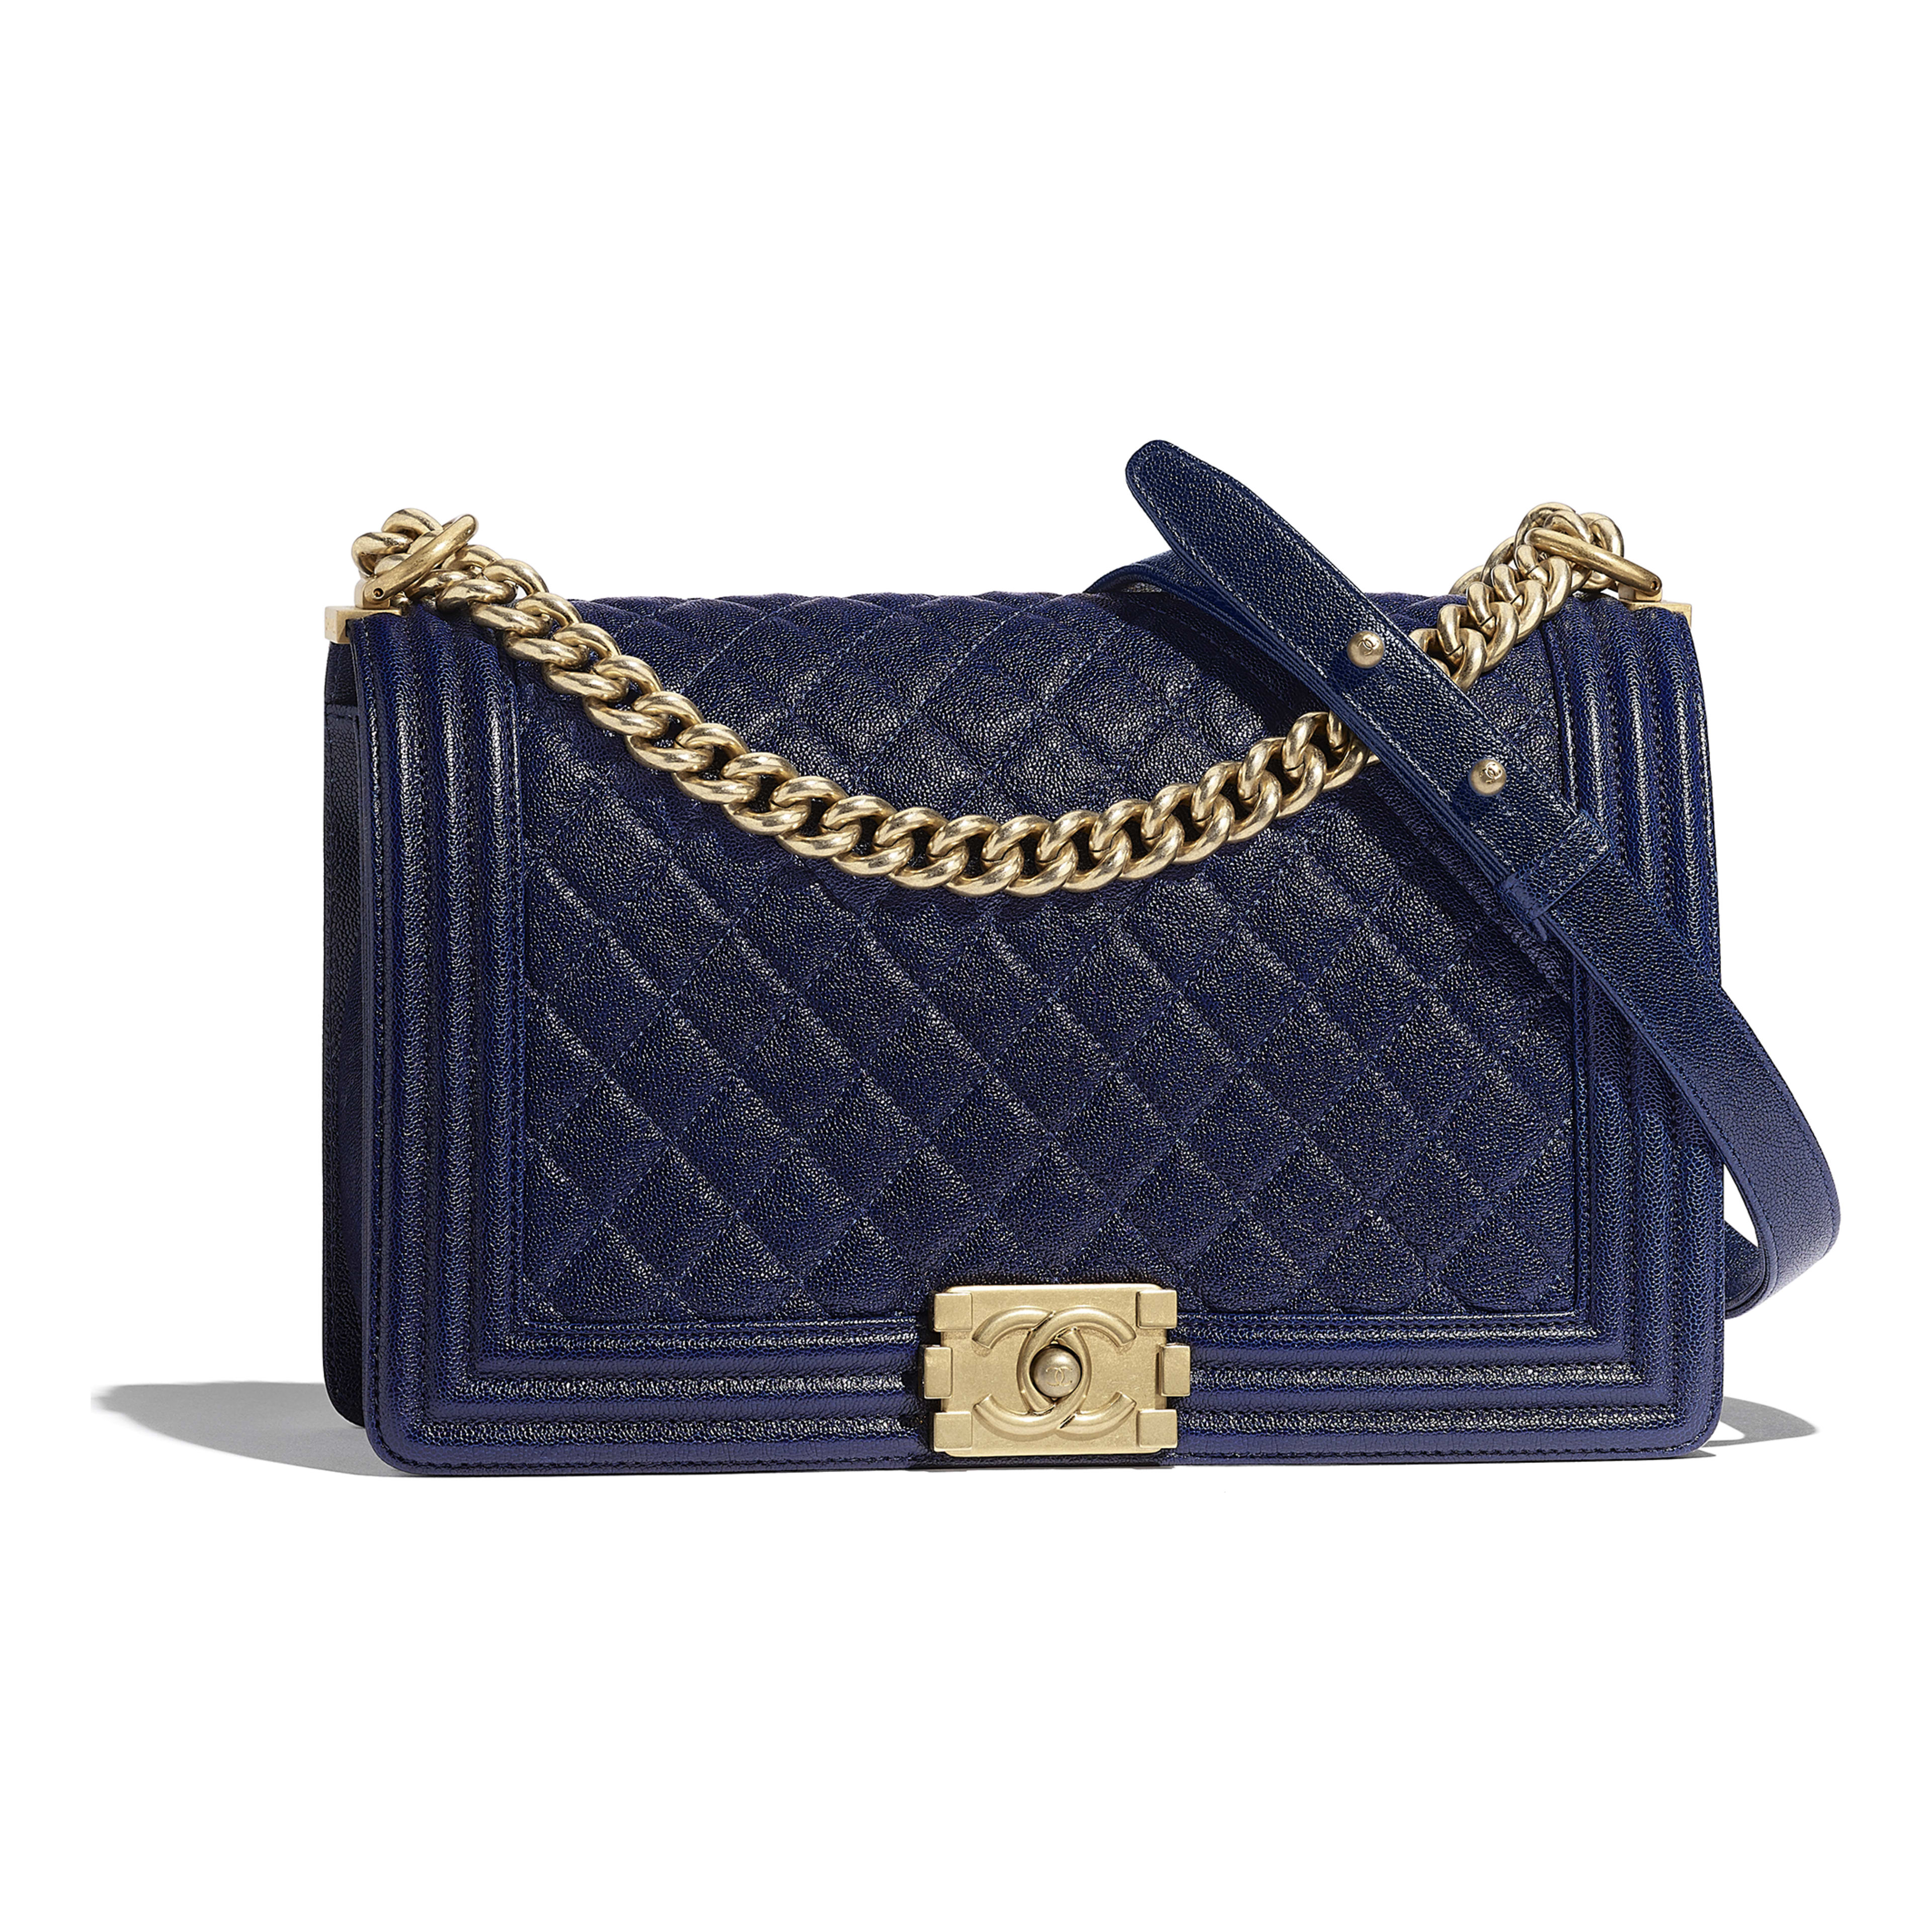 c2d4b3c43d03 Grained Calfskin & Gold-Tone Metal Blue Large BOY CHANEL Handbag ...